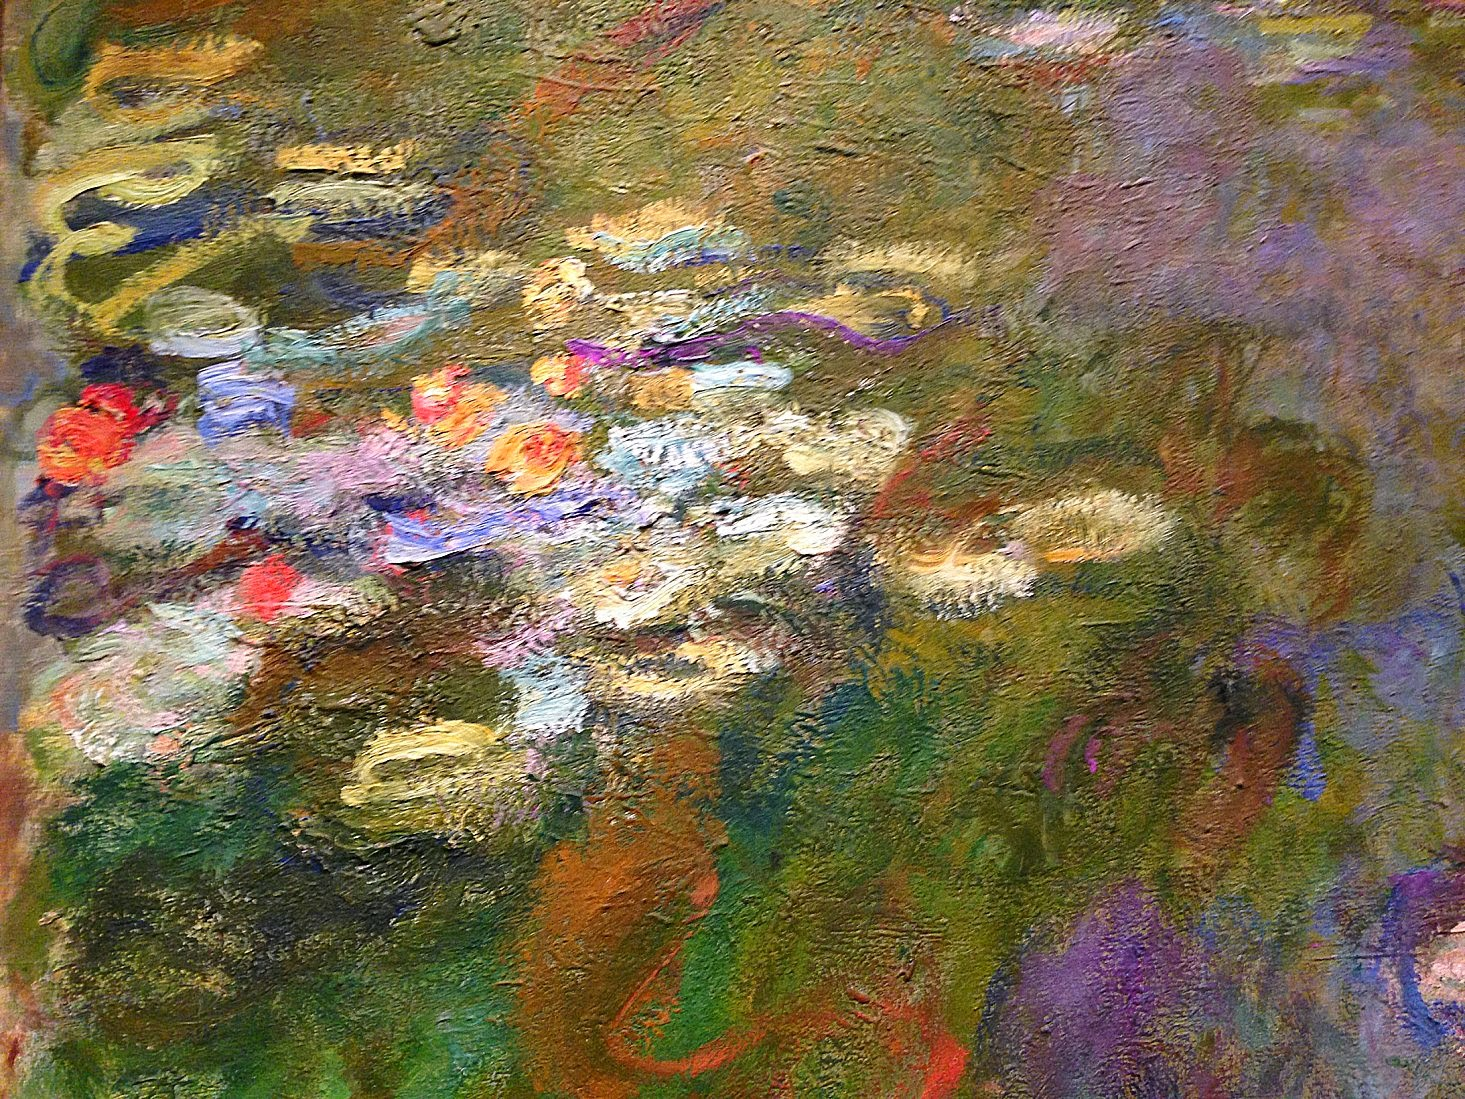 impressionism monet and renoir Impressionism is a 19th-century art movement characterised by relatively small,  thin, yet visible  in december 1873, monet, renoir, pissarro, sisley, cézanne,  berthe morisot, edgar degas and several other artists founded the société.